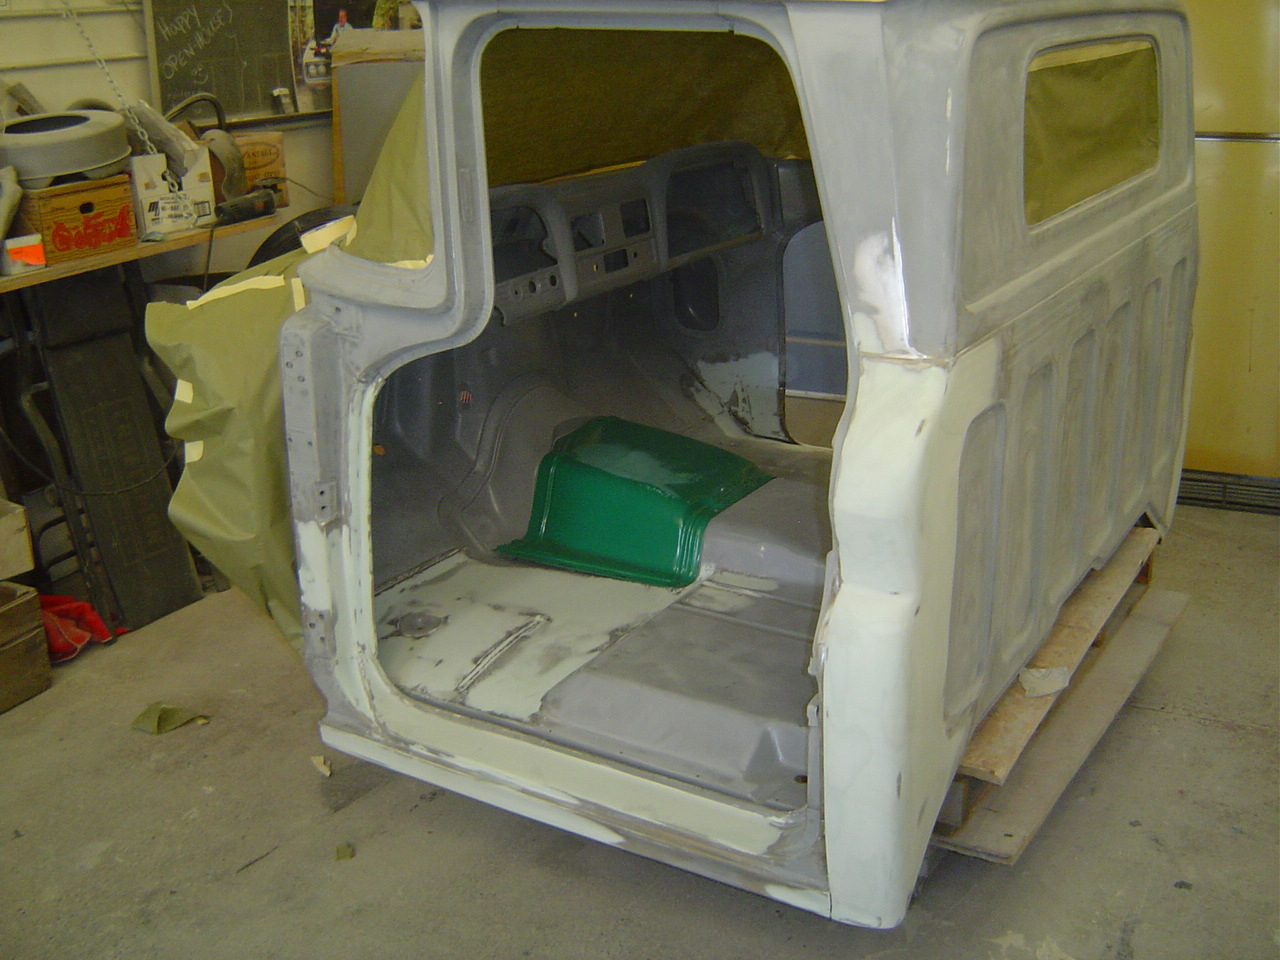 2018 Jeep Cherokee Price In Knoxville - 1968 442 Convertible Project.html | Autos Post